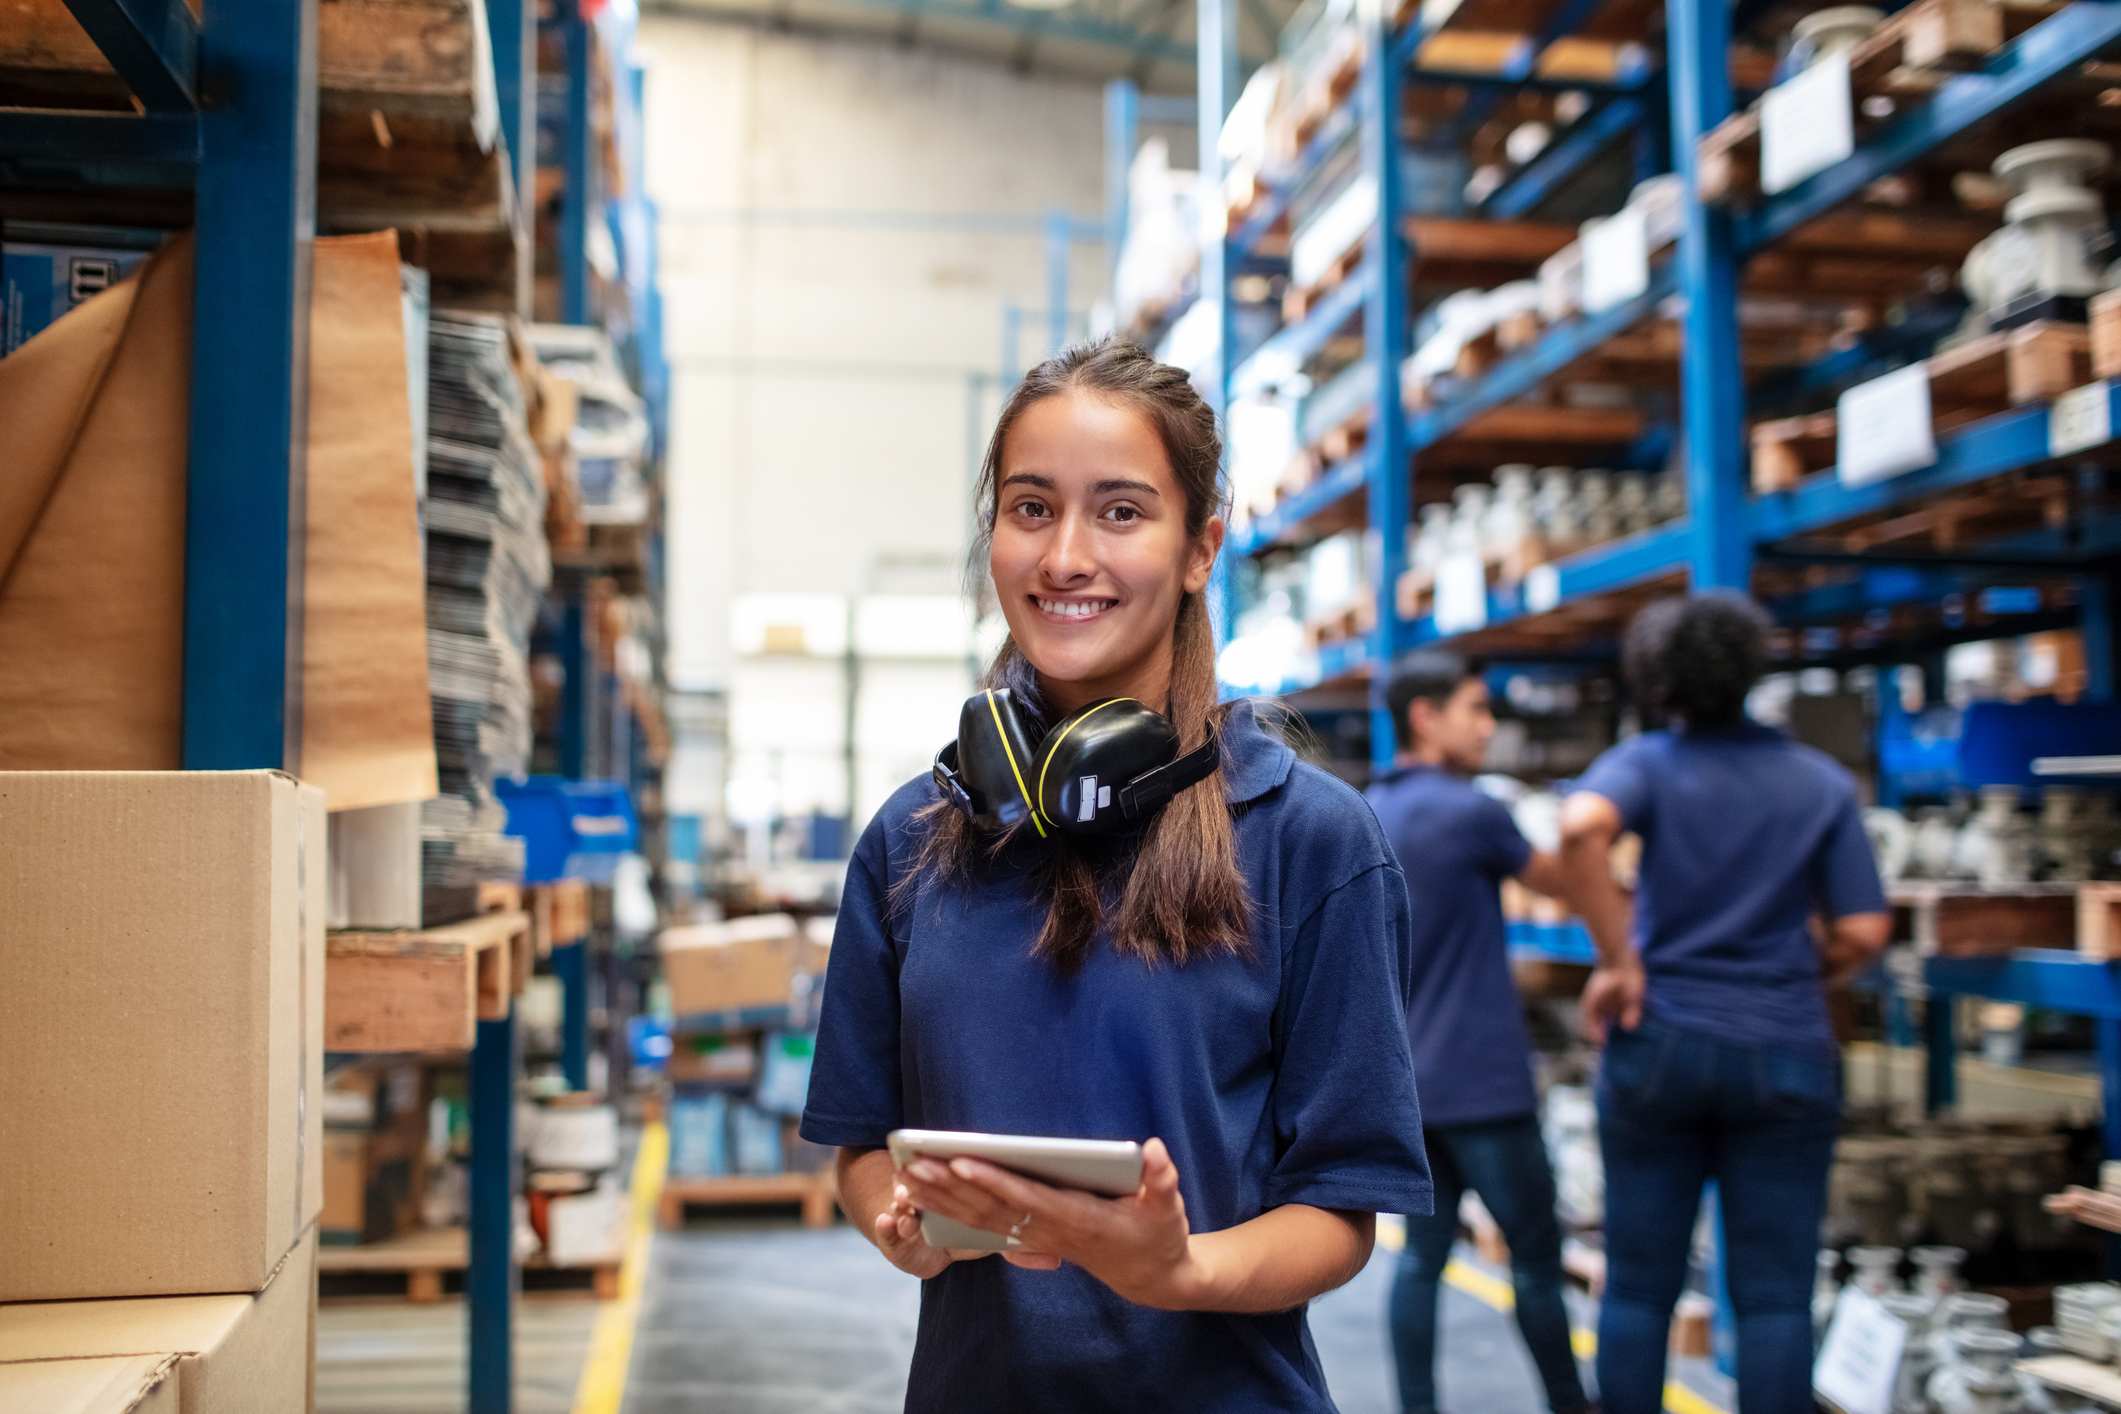 7 Tips for Managing Millennials in a Warehouse